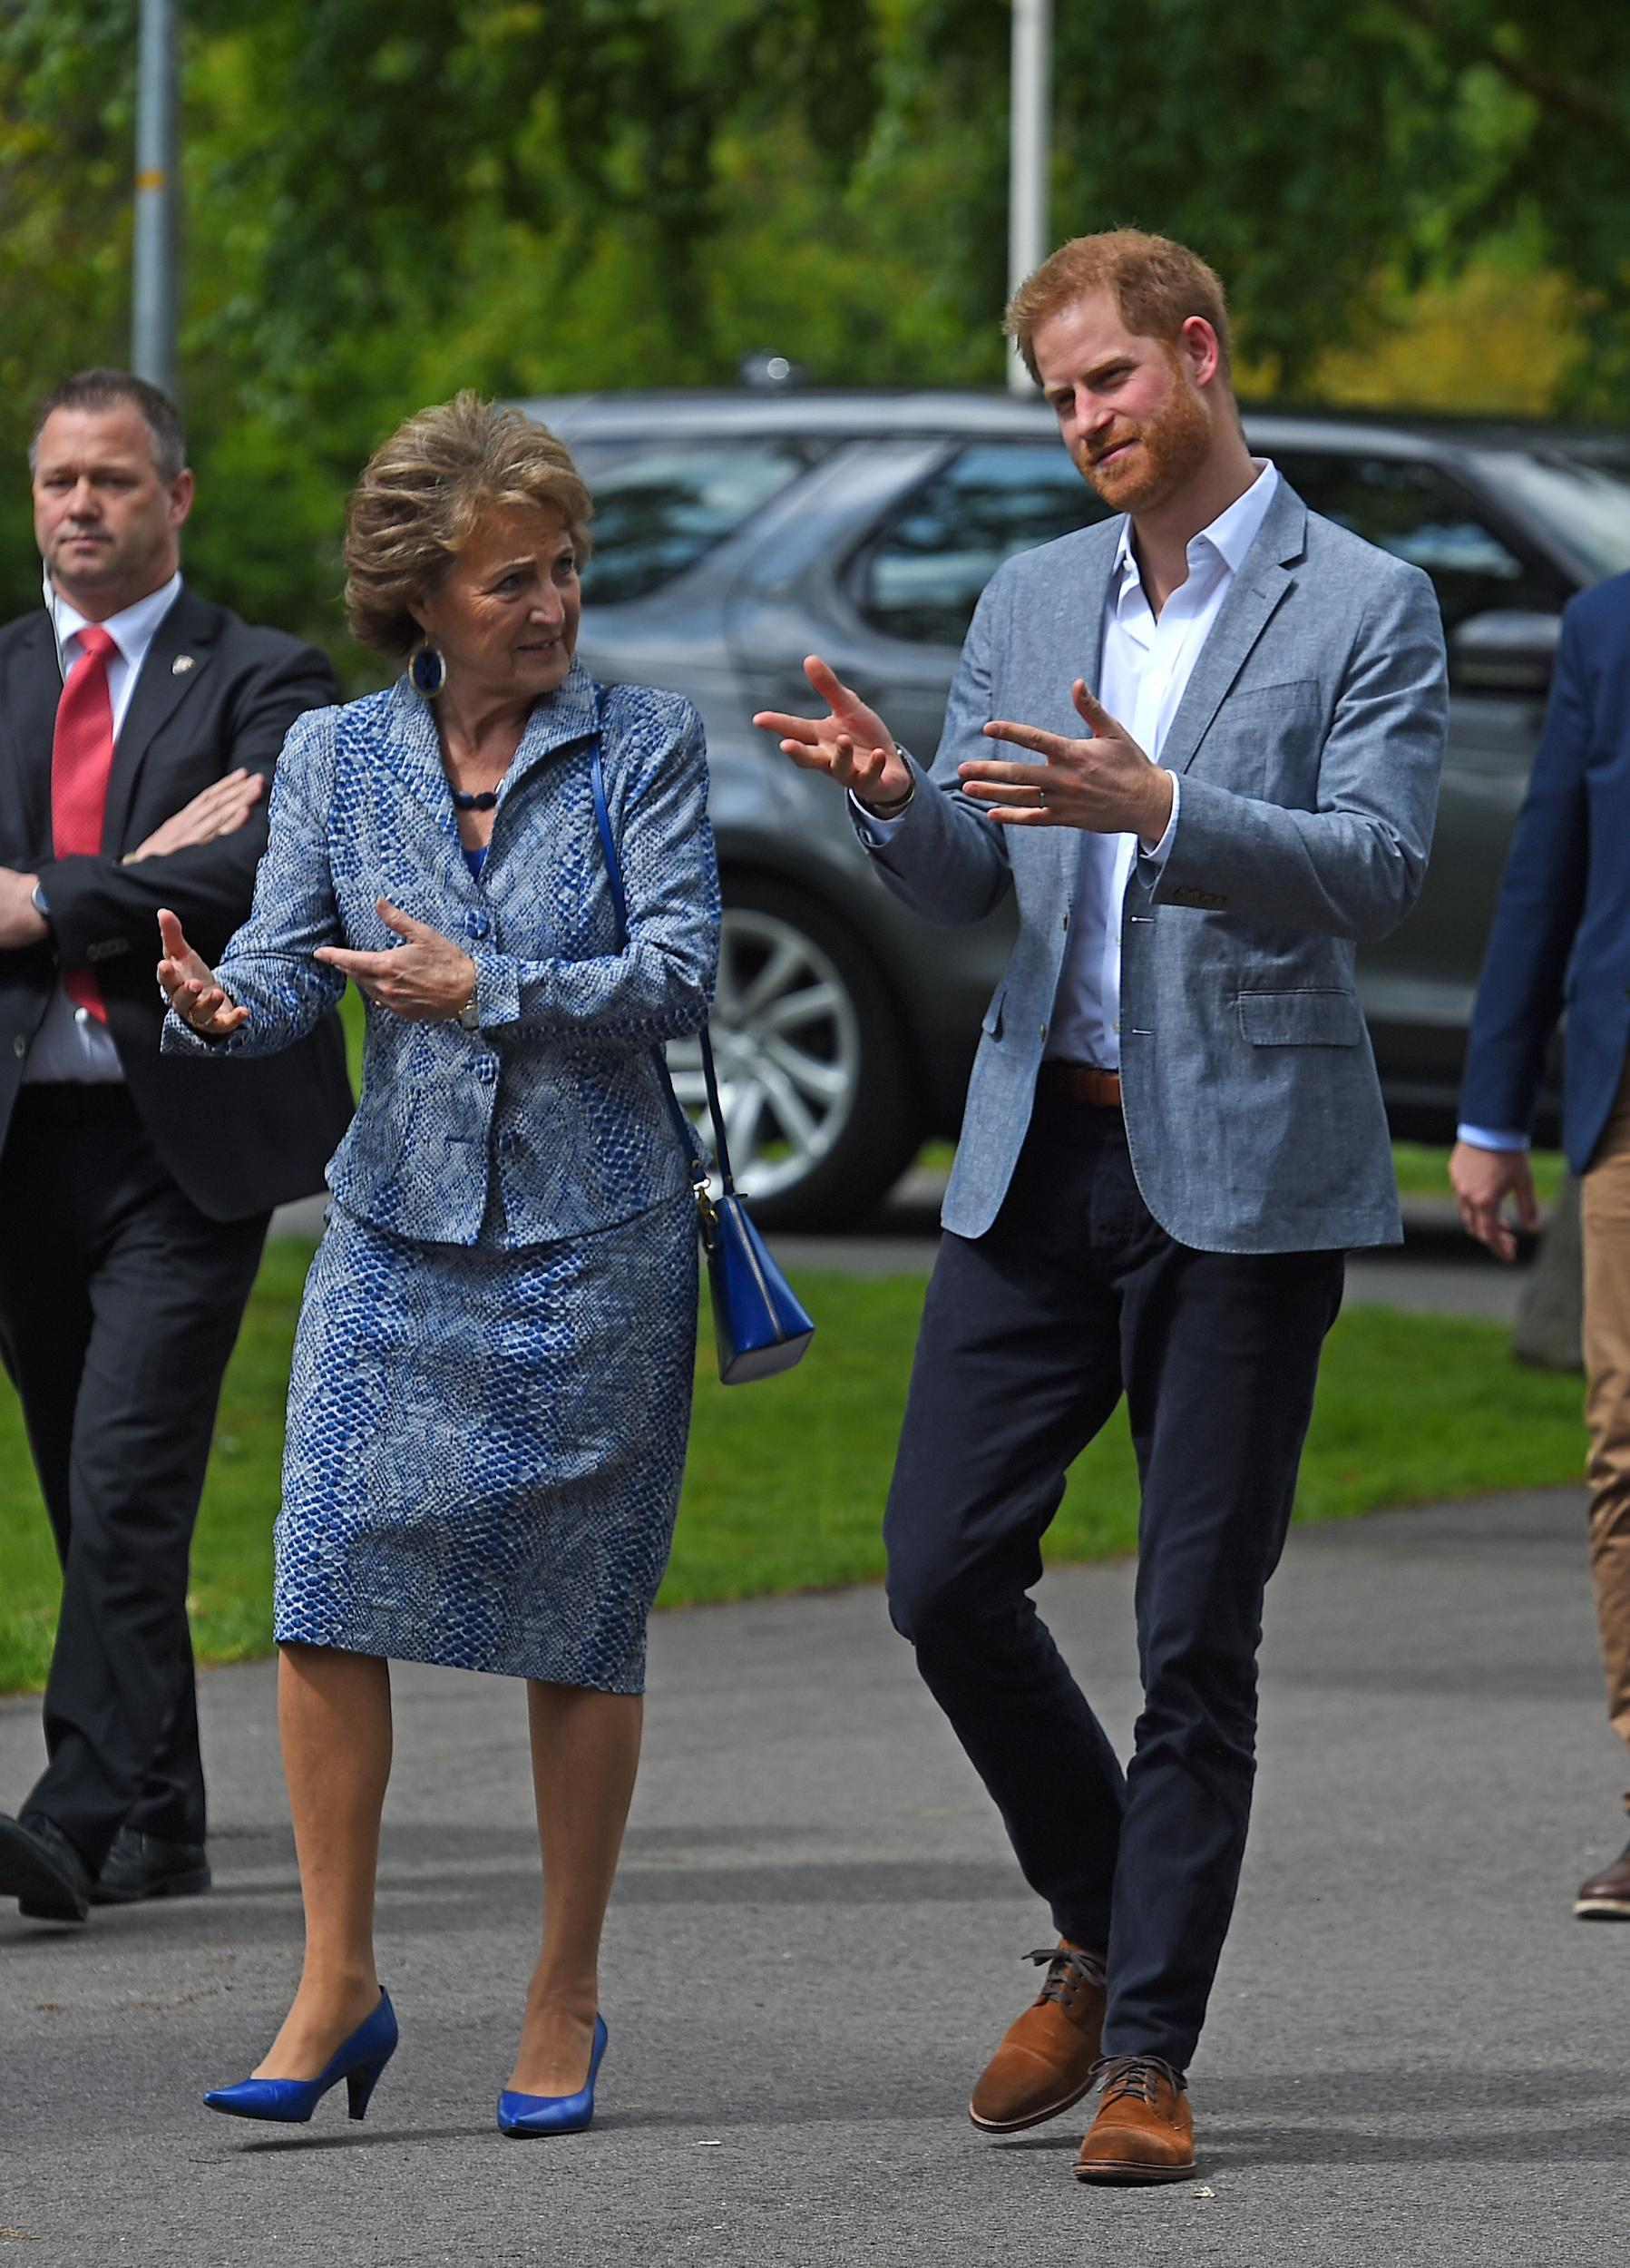 The Duke of Sussex with Princess Margriet of the Netherlands as he arrives for one day visit to Amsterdam in the Netherlands. (Photo by Kirsty O'Connor/PA Images via Getty Images)